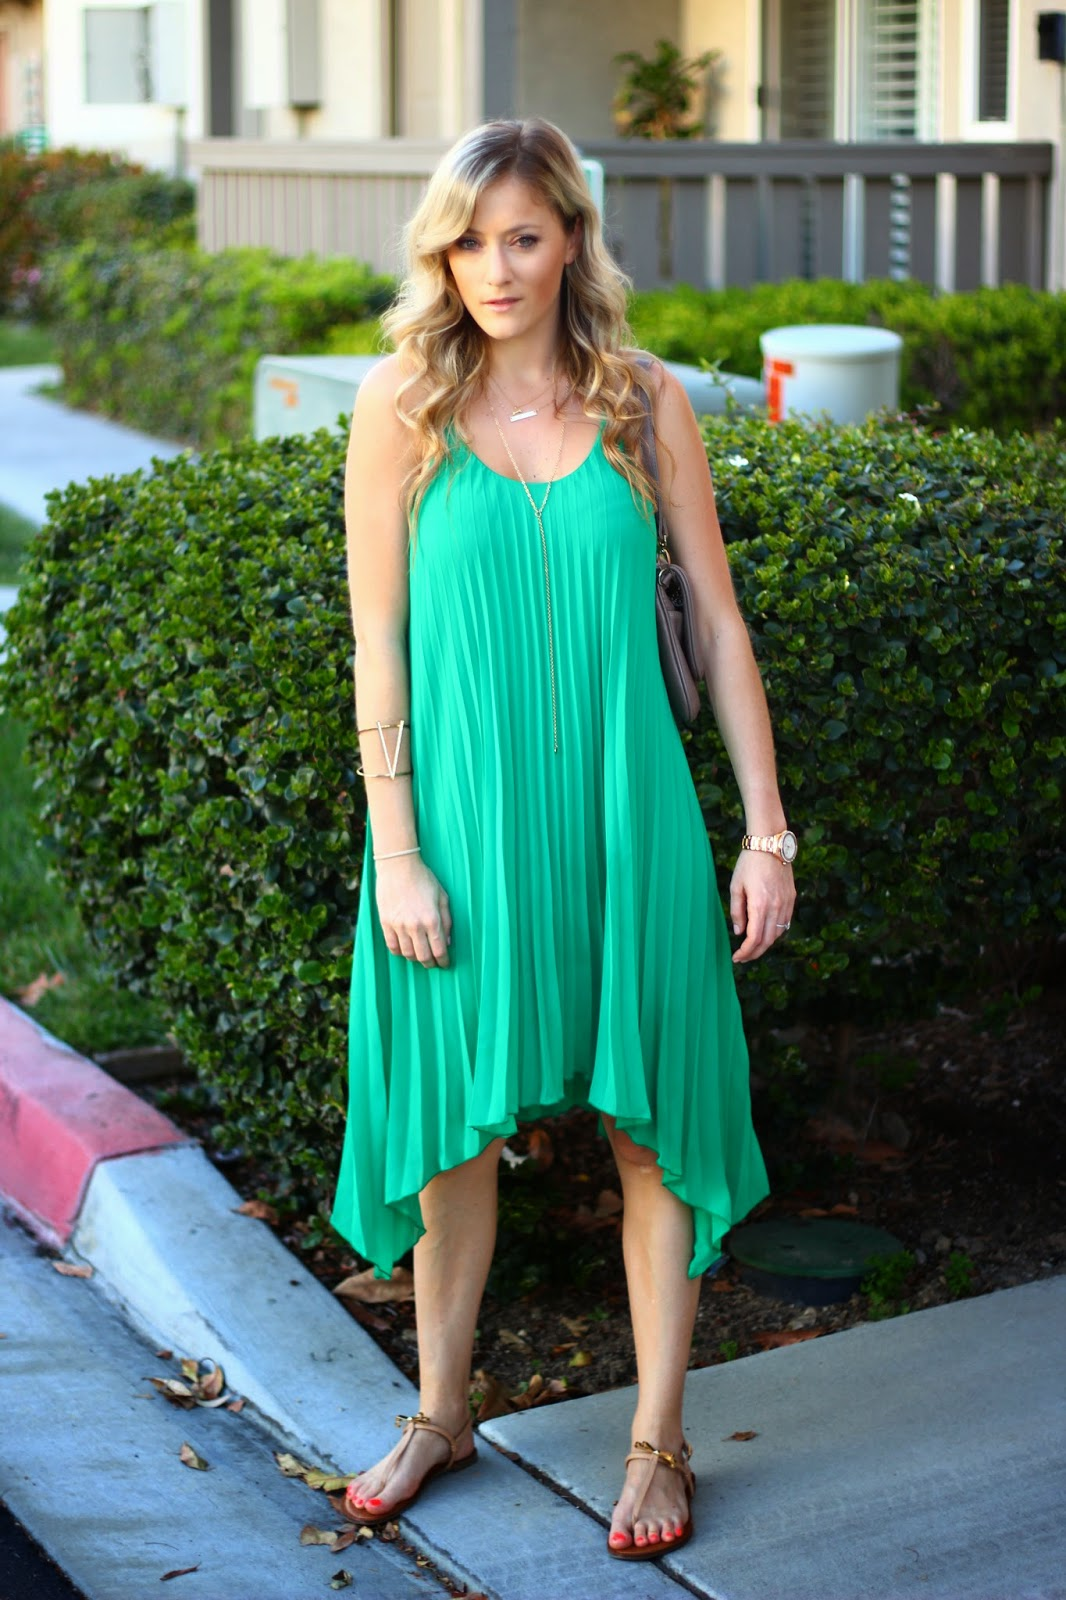 Green Pleated Dress From H&m